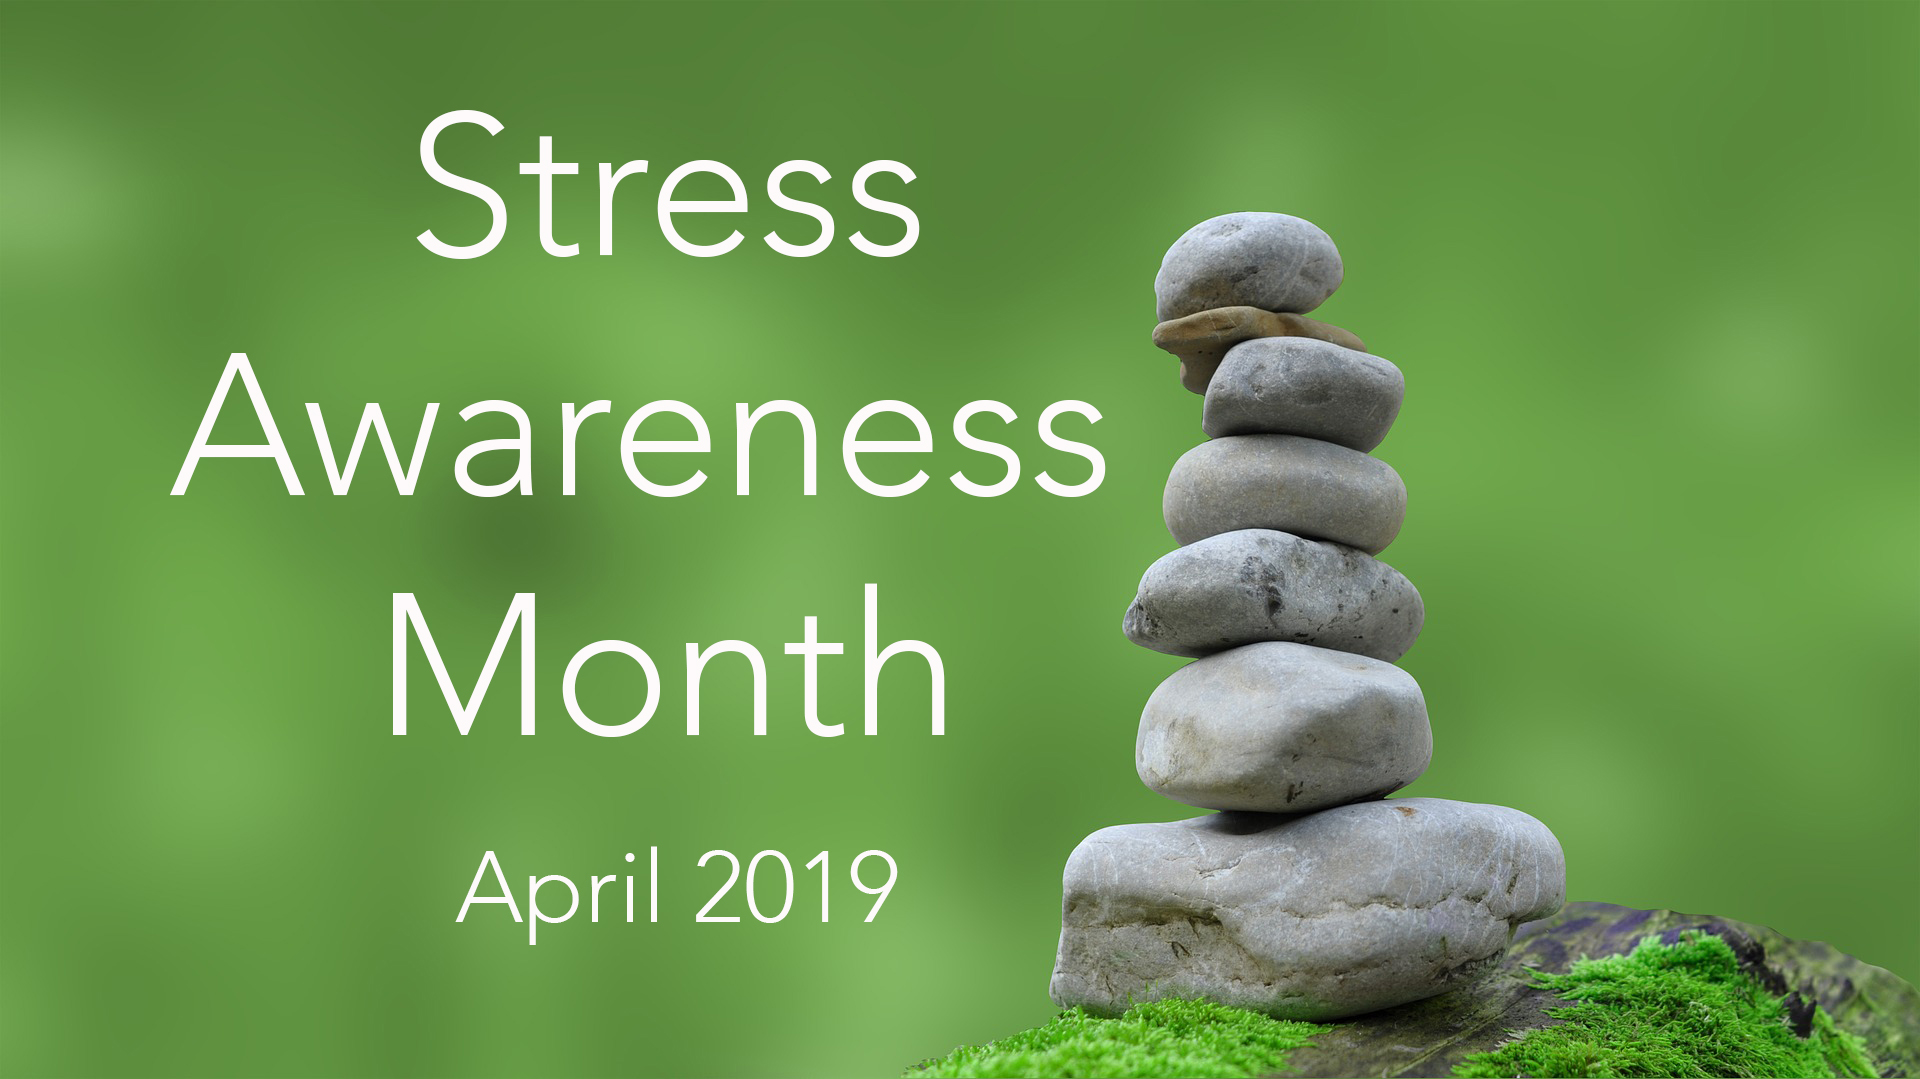 Stress Awareness Month April 2019